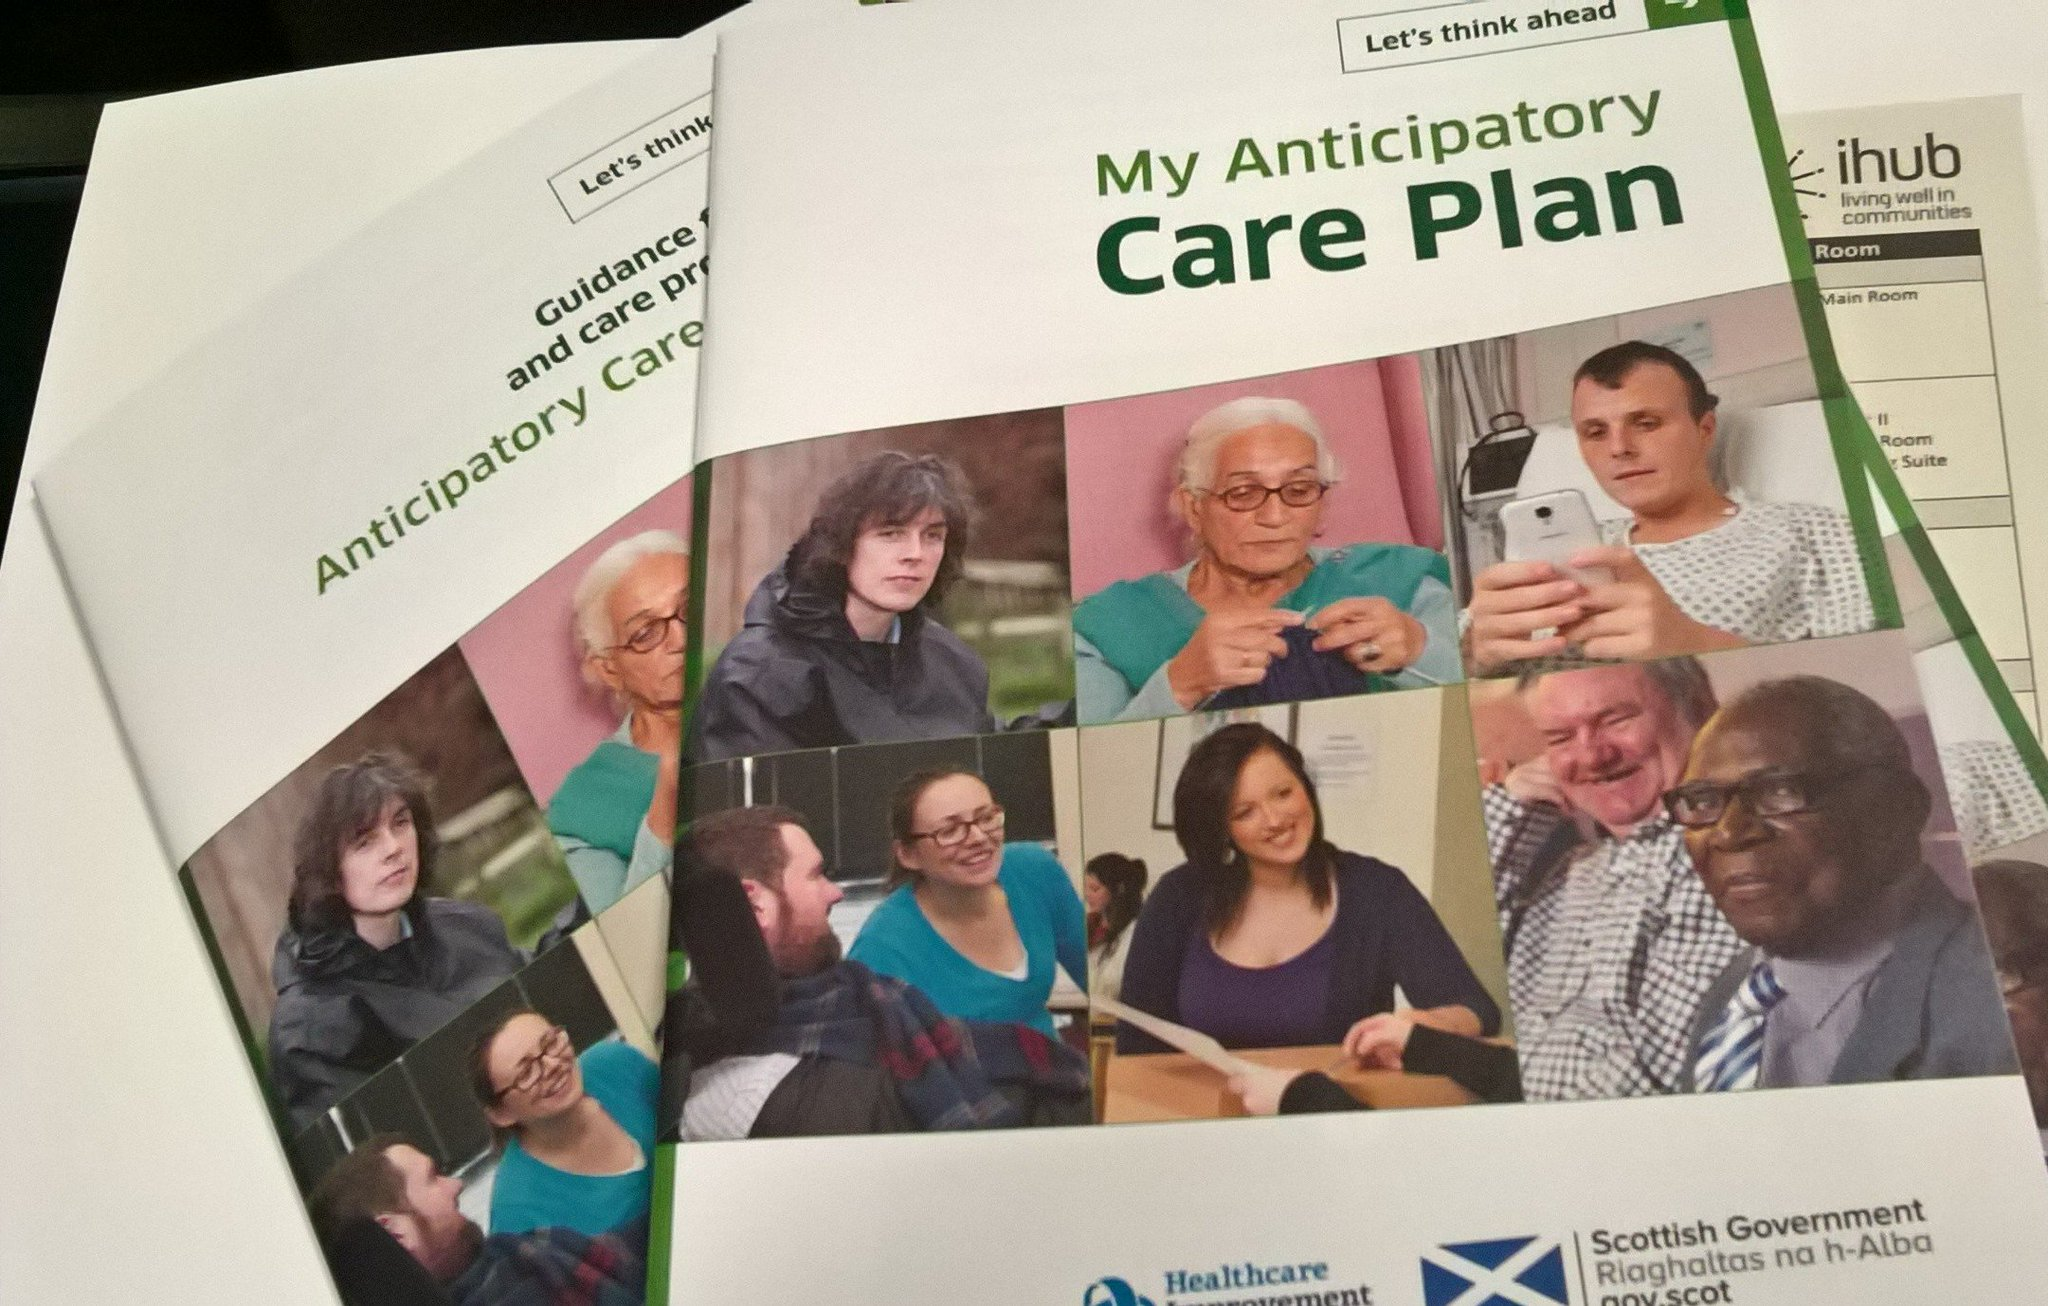 Today marks the launch of the national Anticipatory Care Planning document and app at an event in Edinburgh. #acplaunch https://t.co/icCxF6fqyl